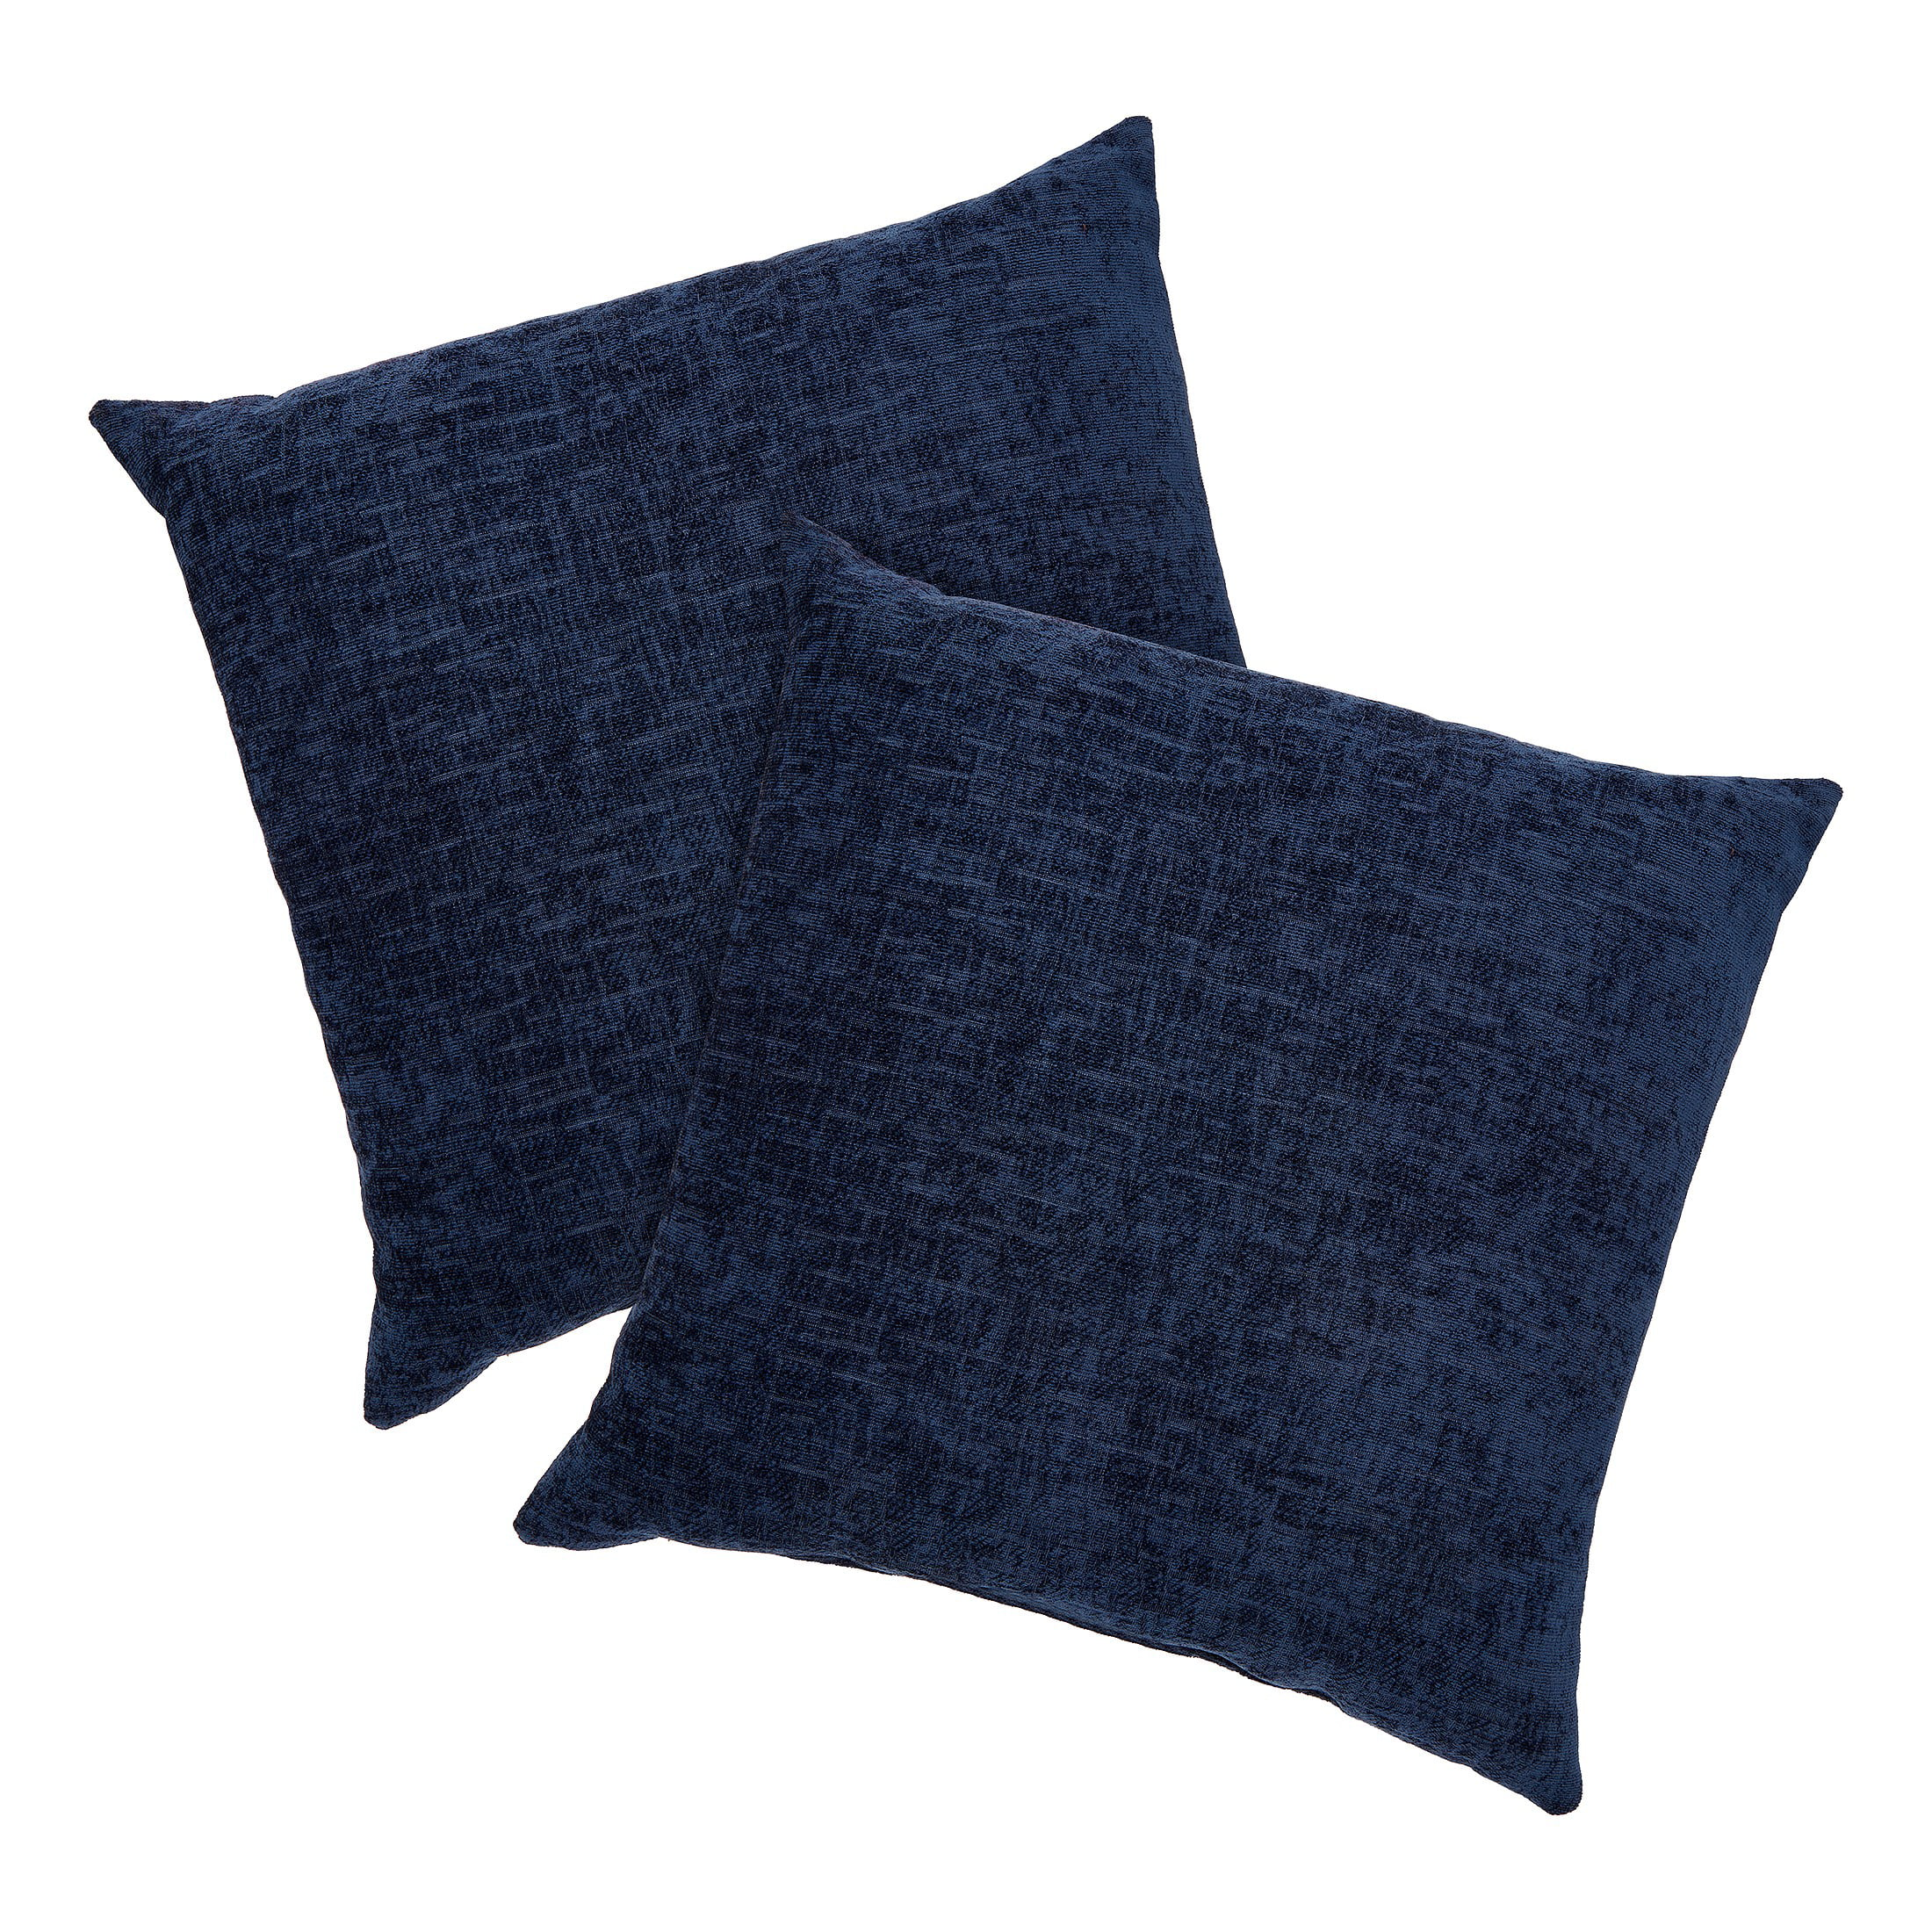 mainstays chenille decorative square throw pillow 18 x 18 navy 2 pack walmart com